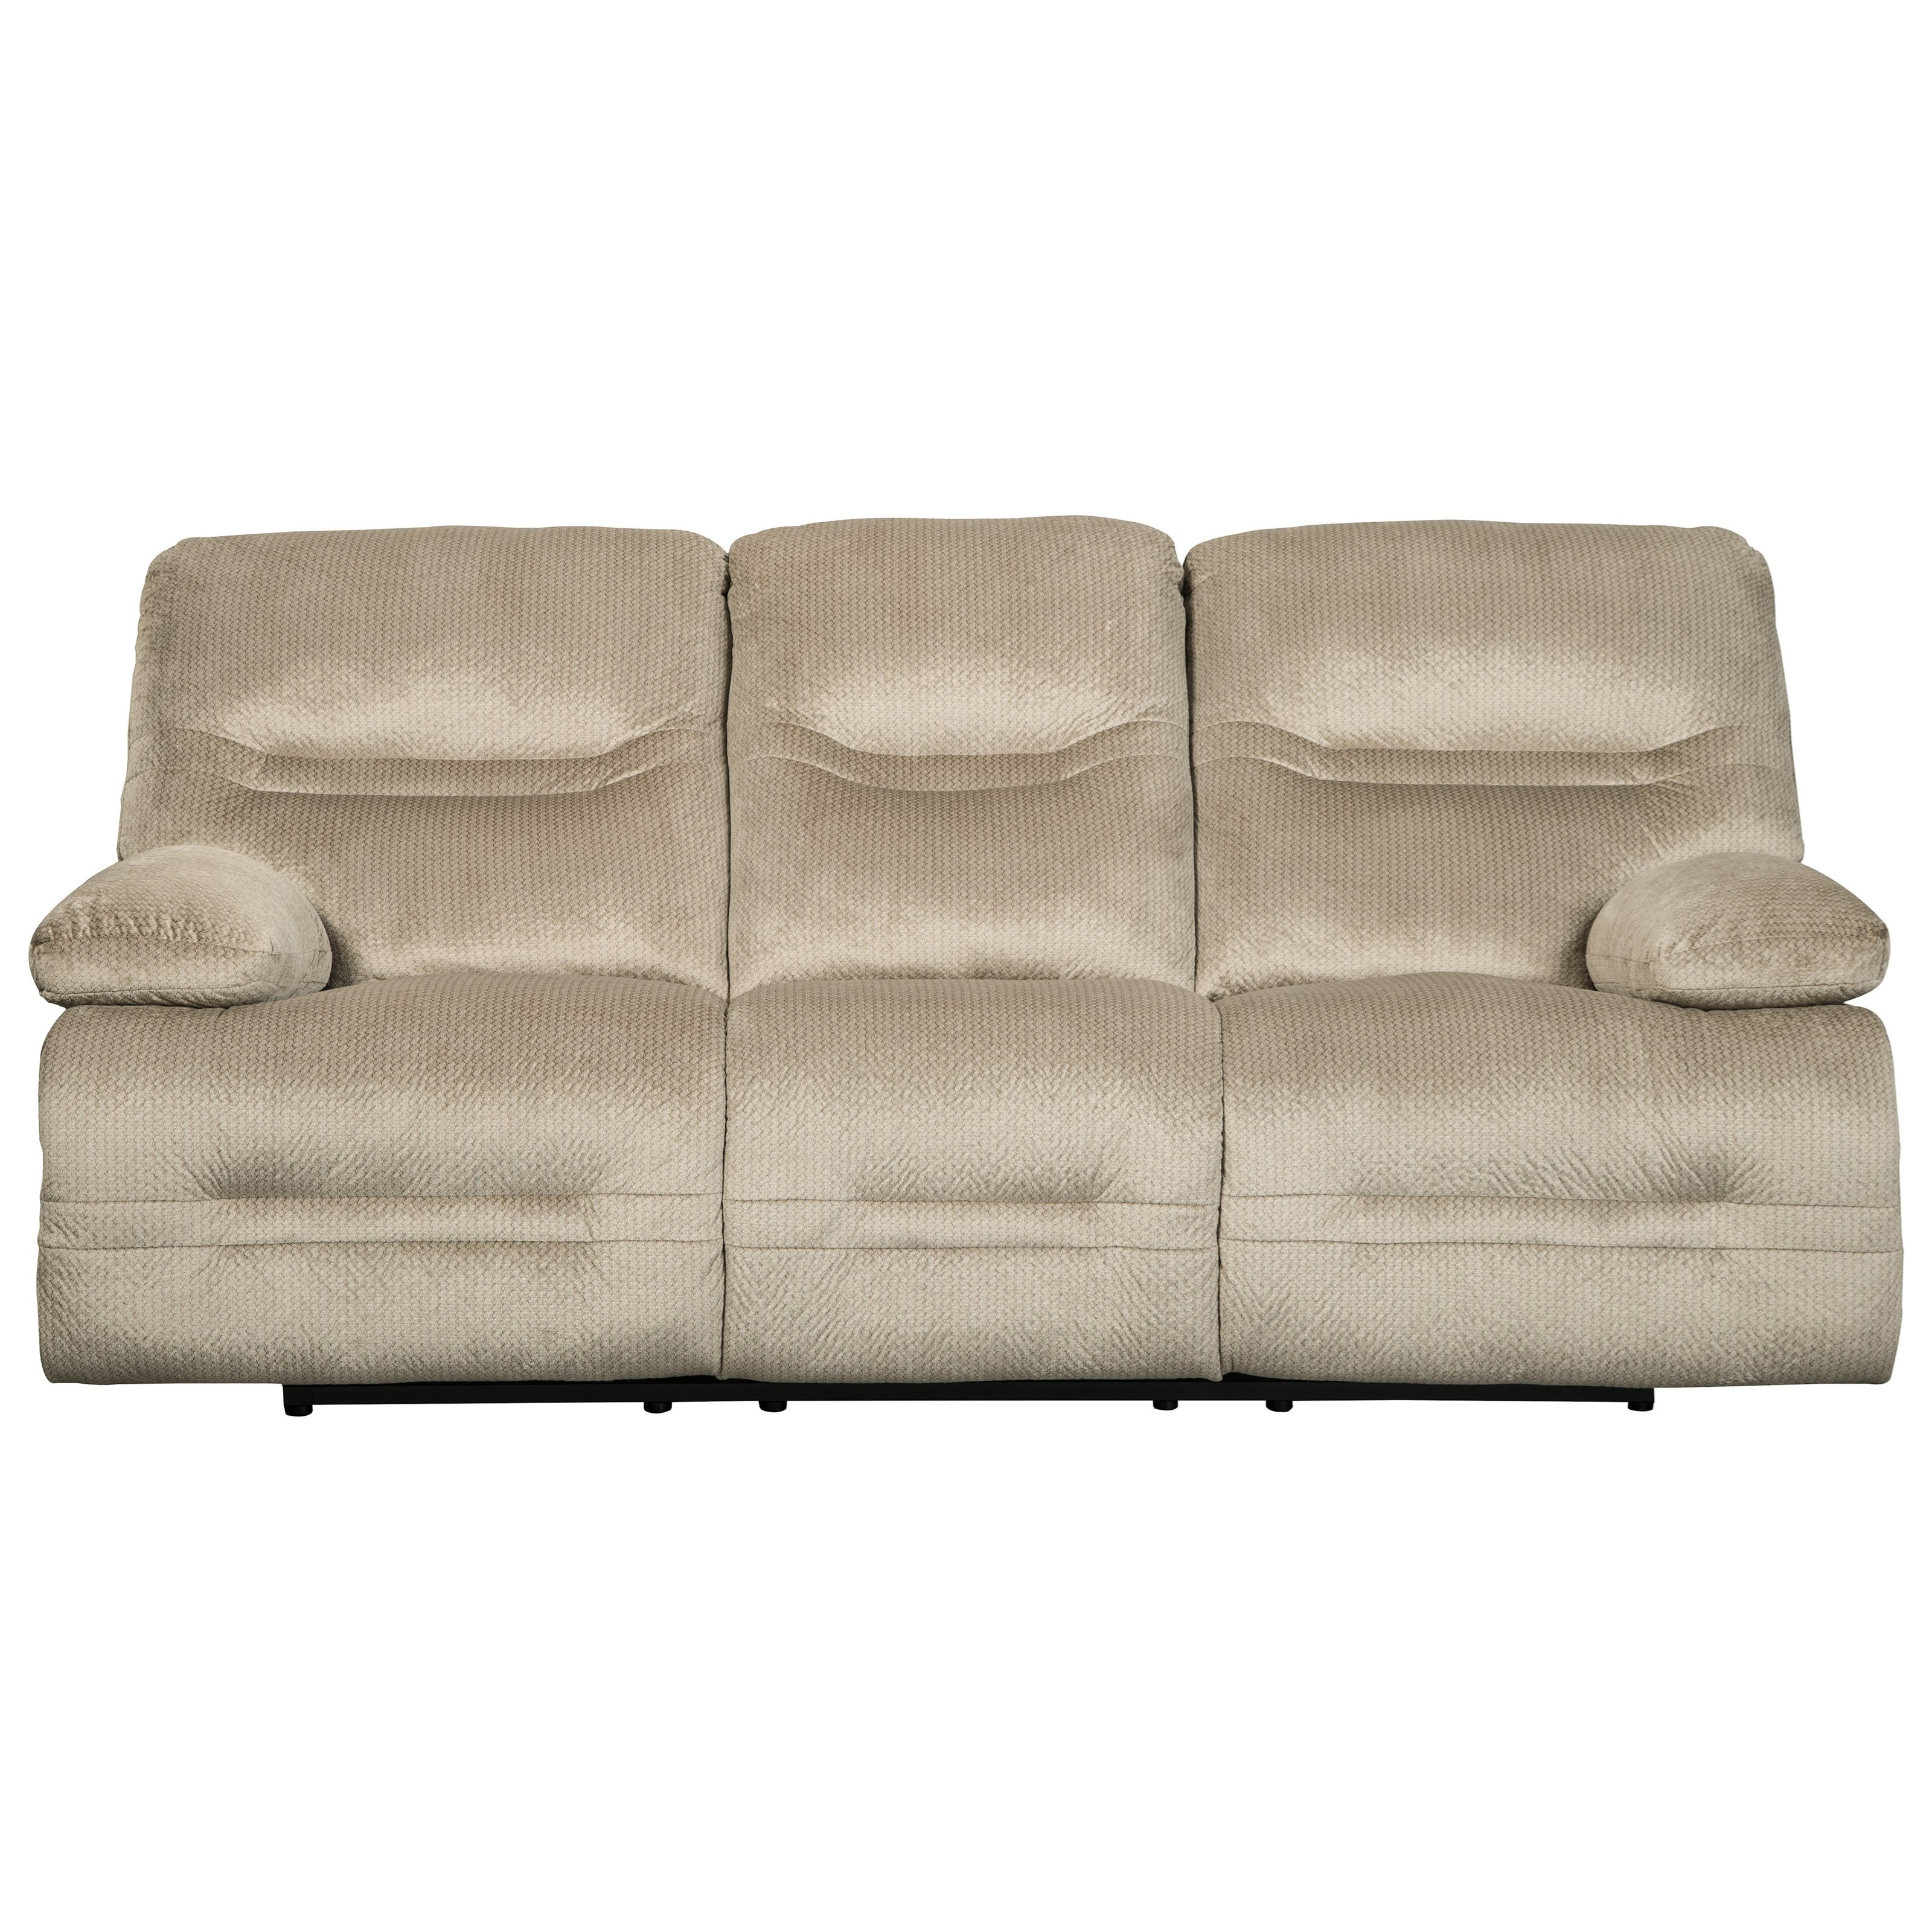 Signature design by ashley brayburn 7770287 contemporary for Contemporary reclining sofas